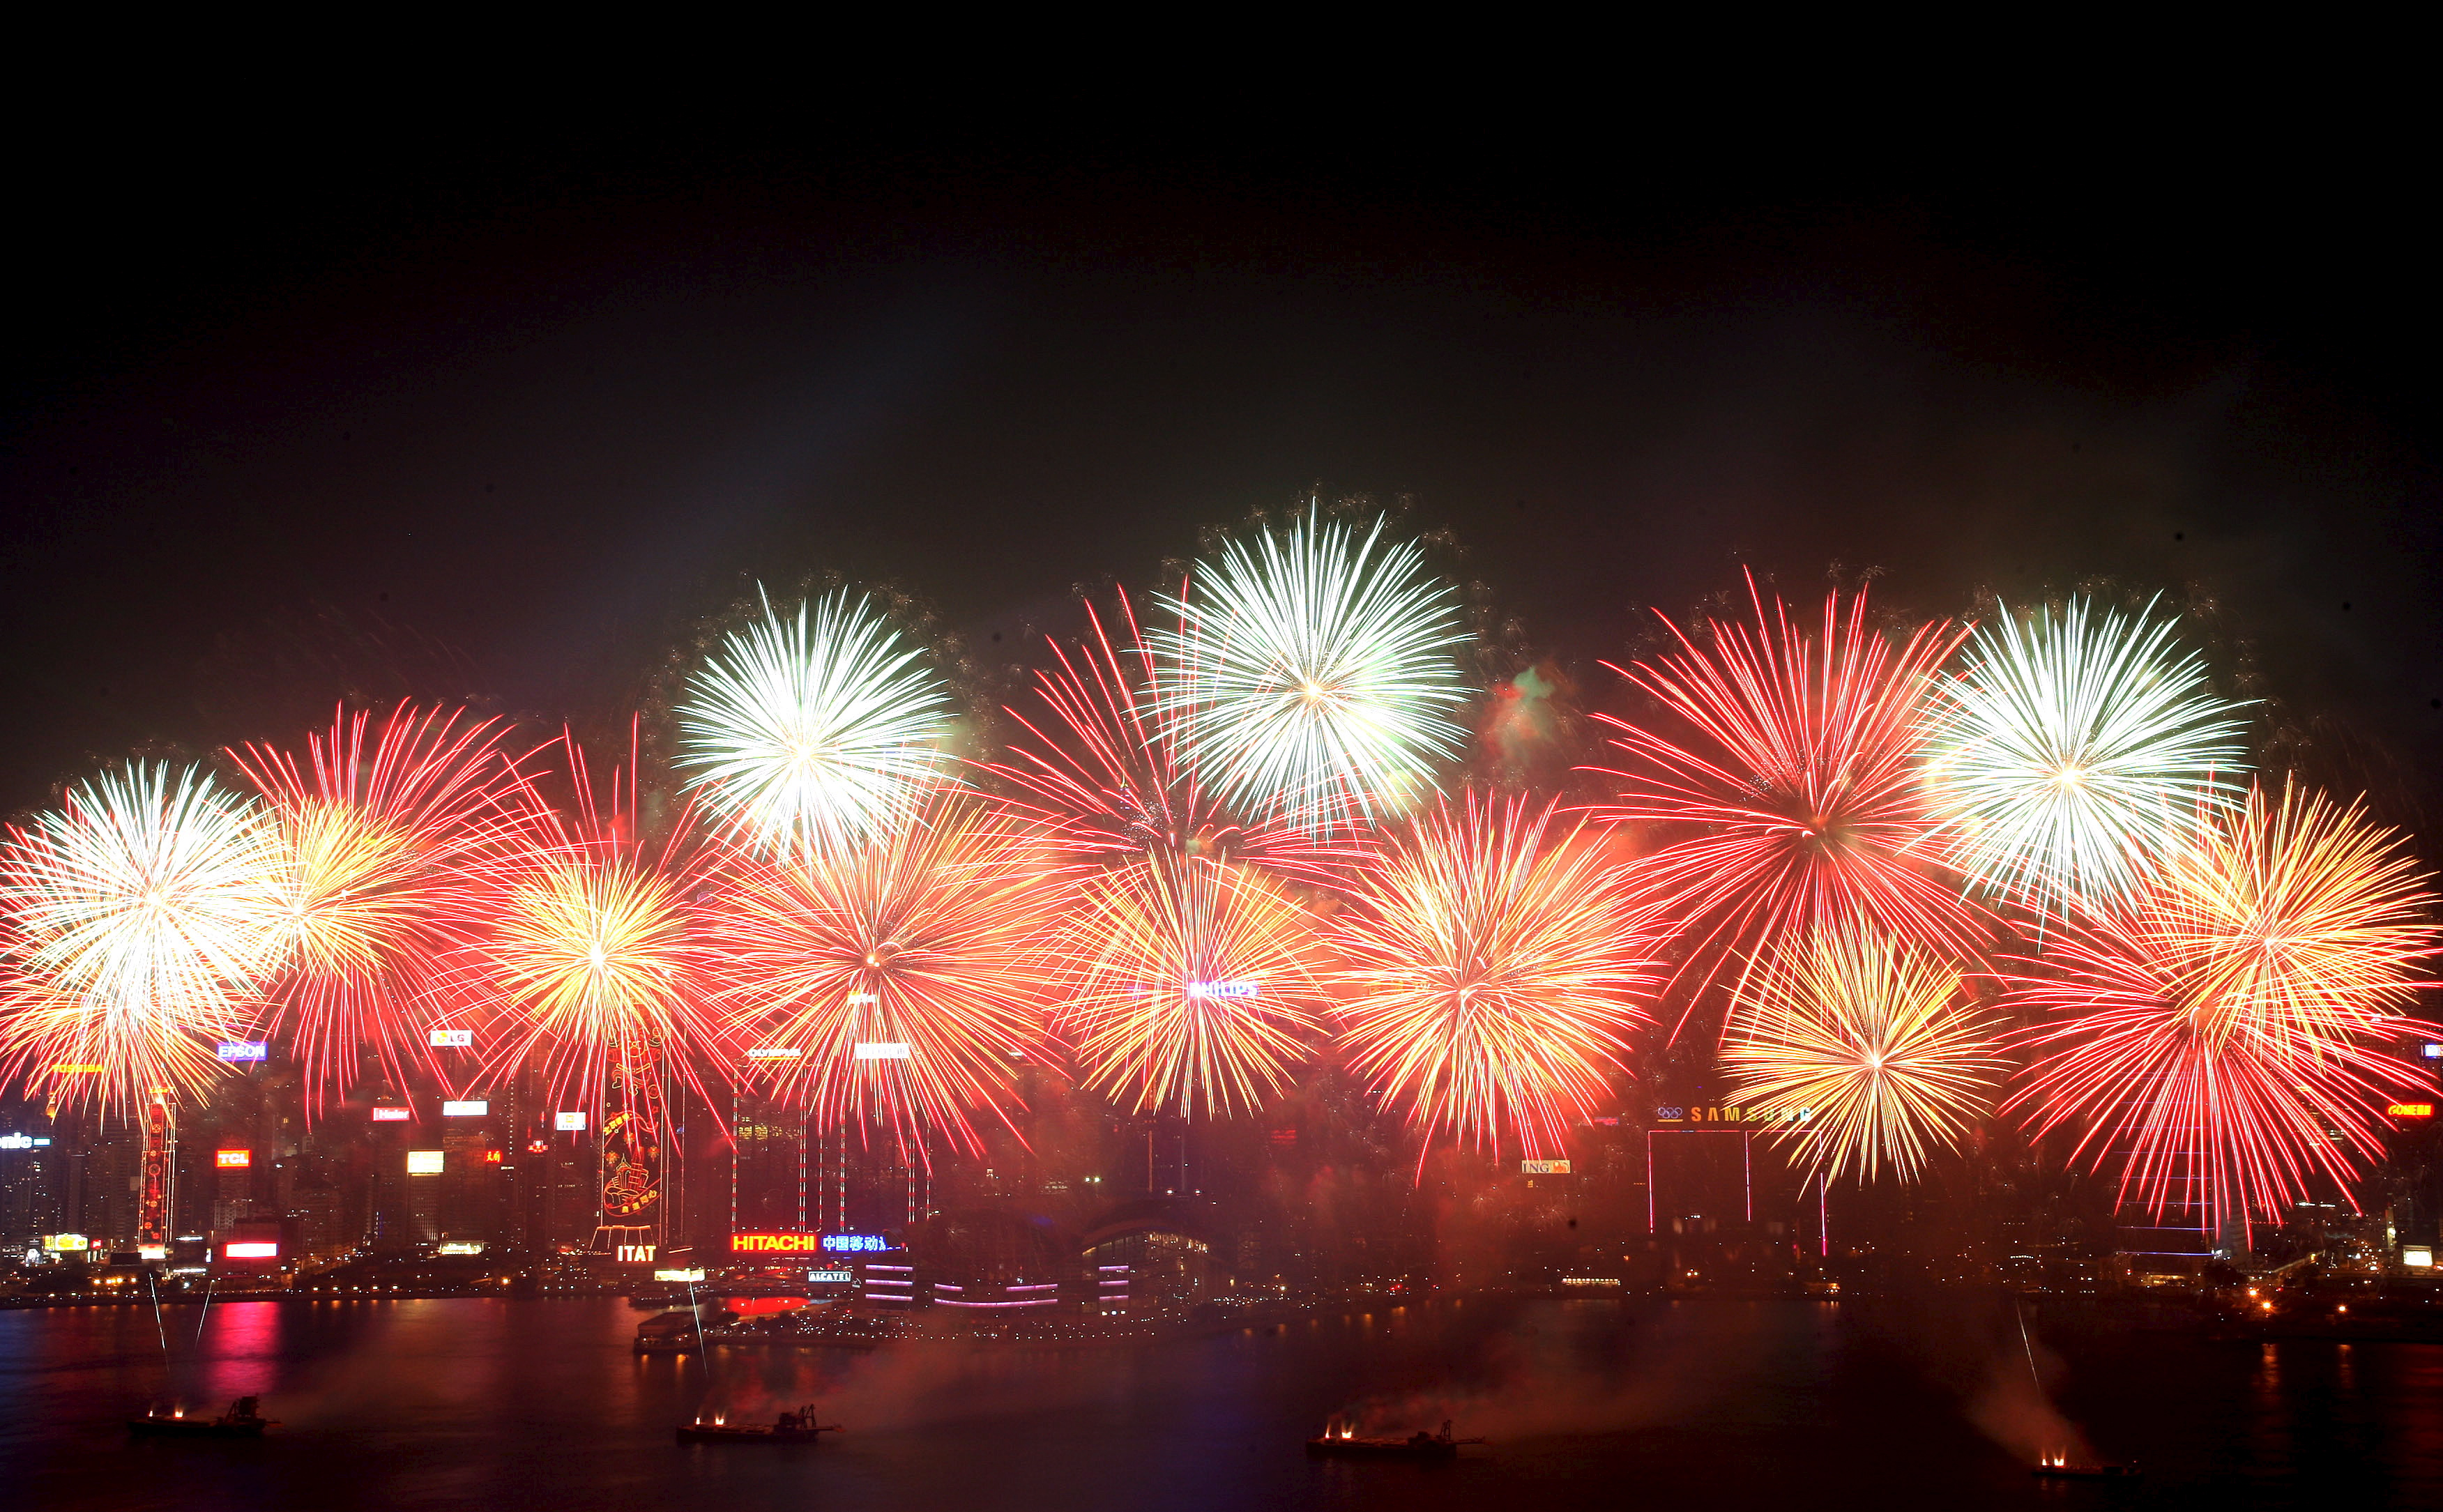 victoria harbour hong kong china chinese new year fireworks new year